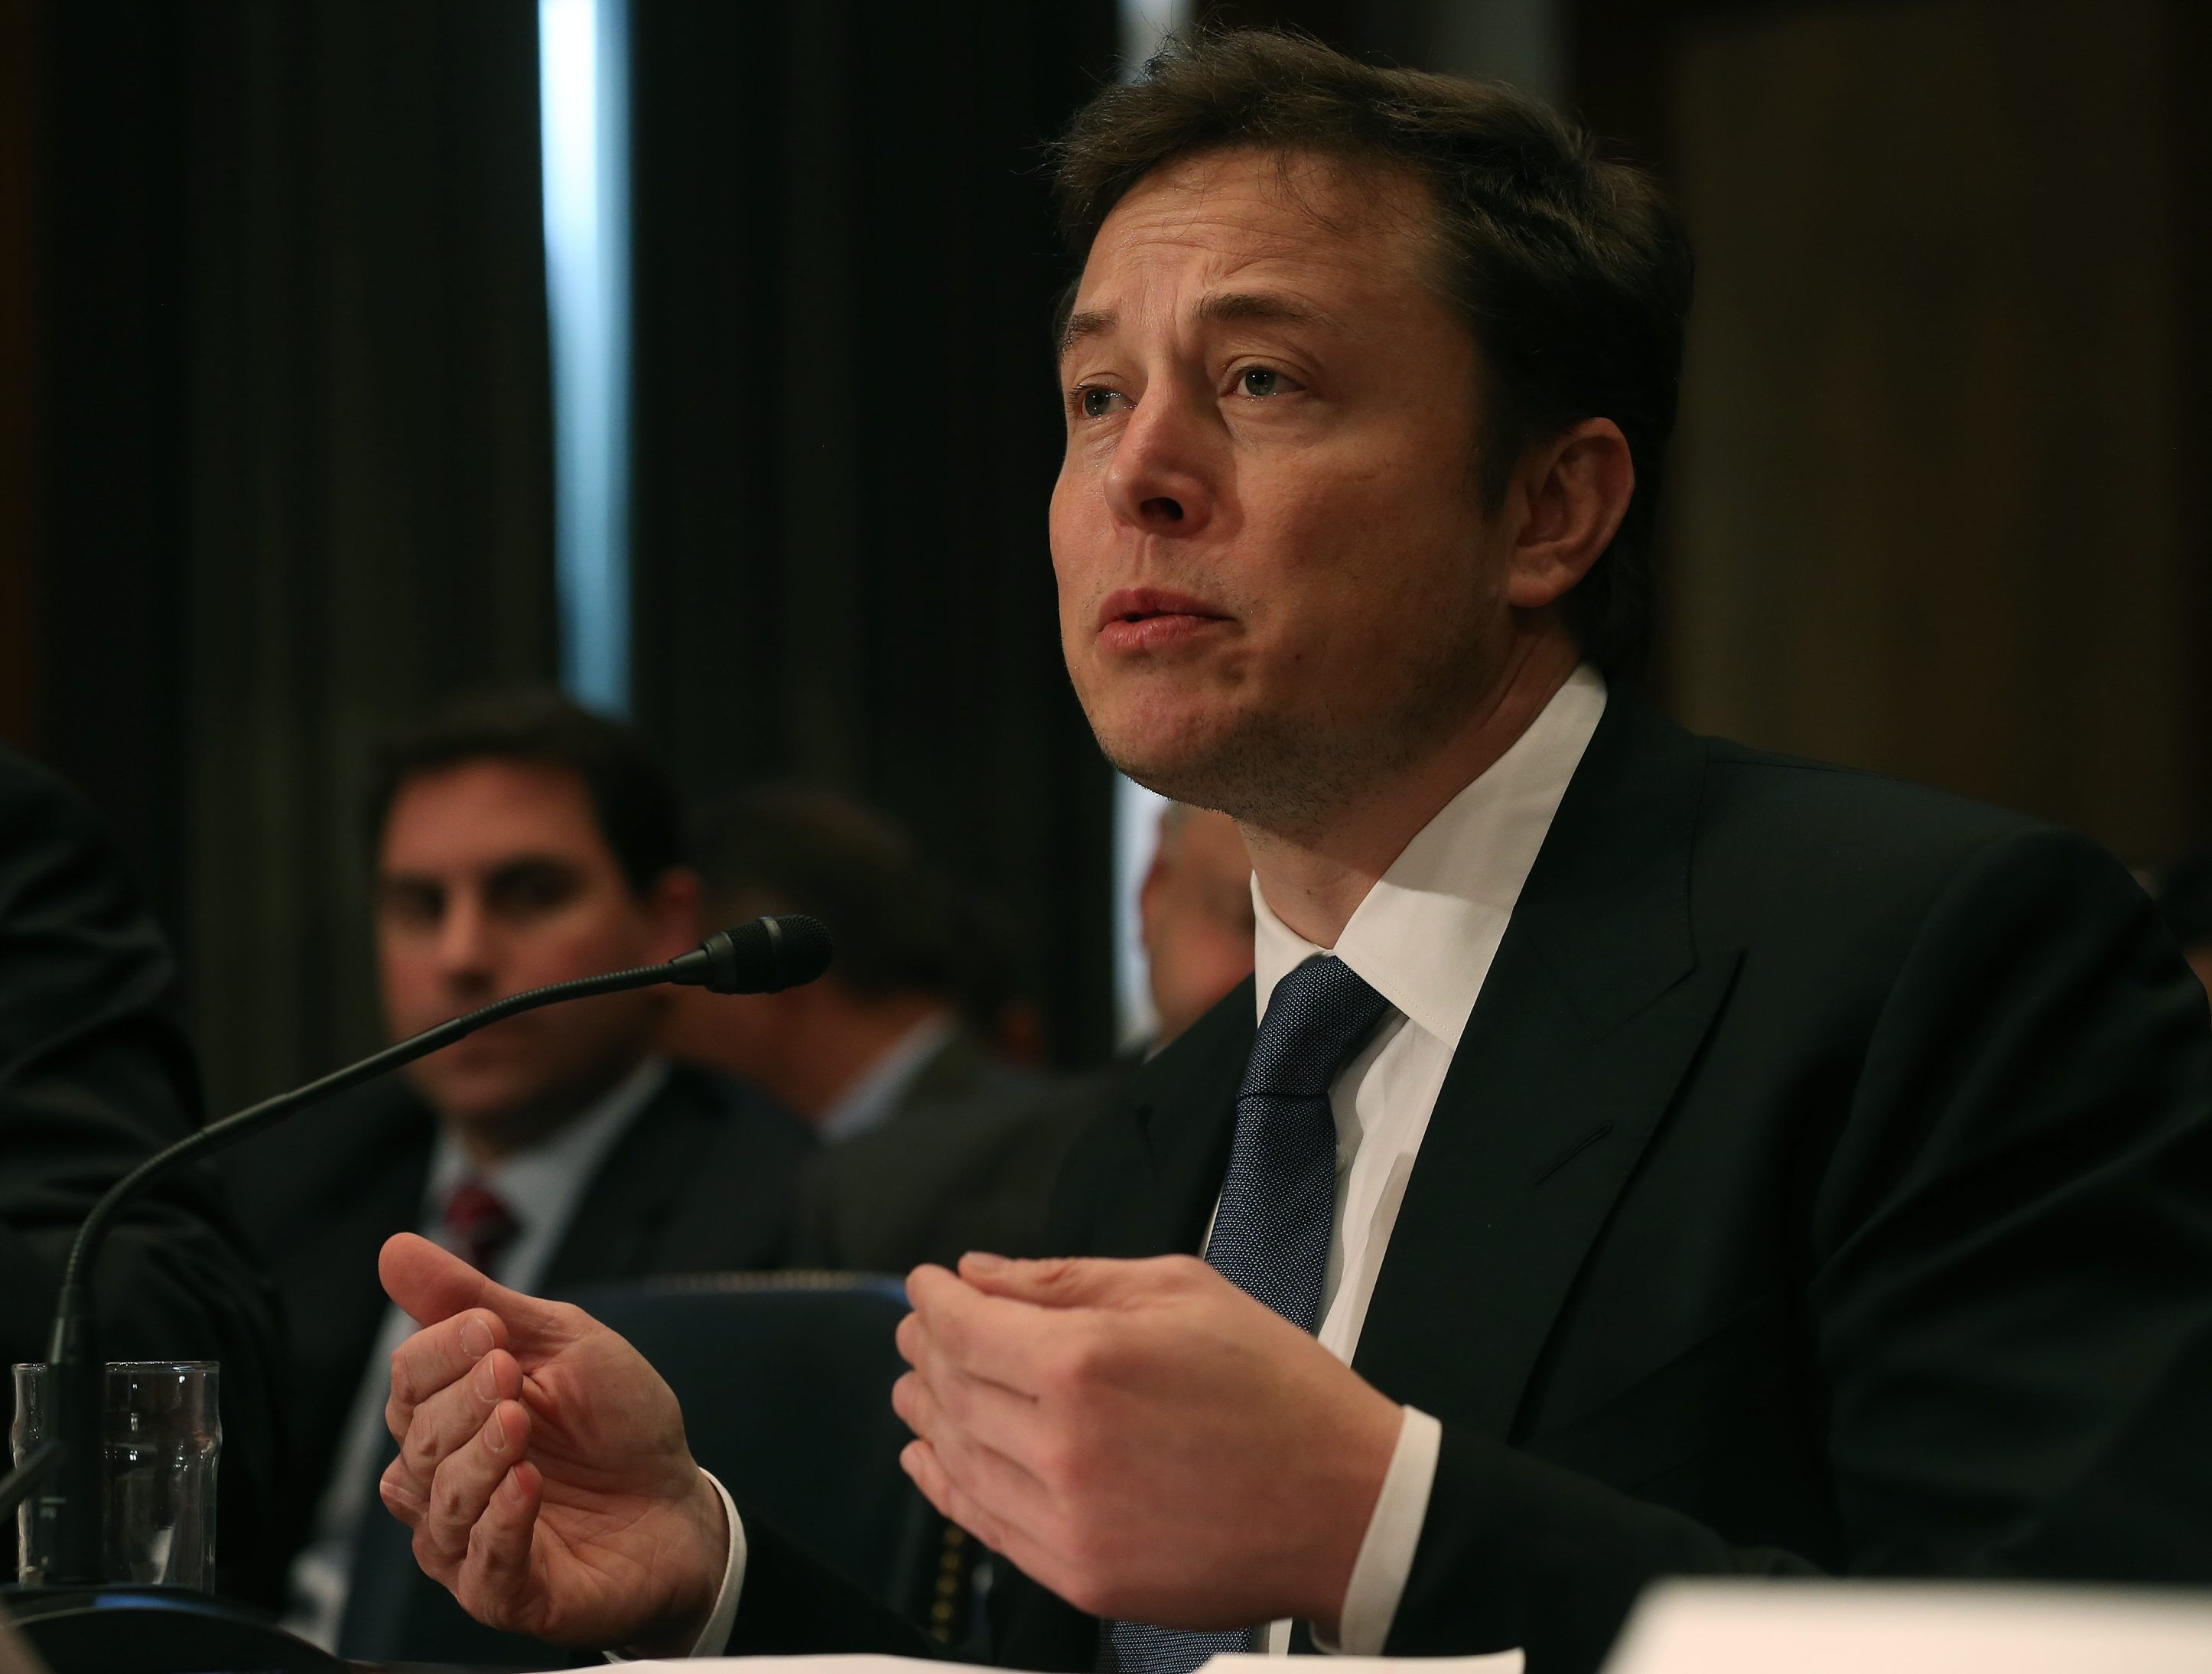 Tesla Motors founder Elon Musk is the new owner of SolarCity Corp. of San Mateo, Calif. (Getty Images)